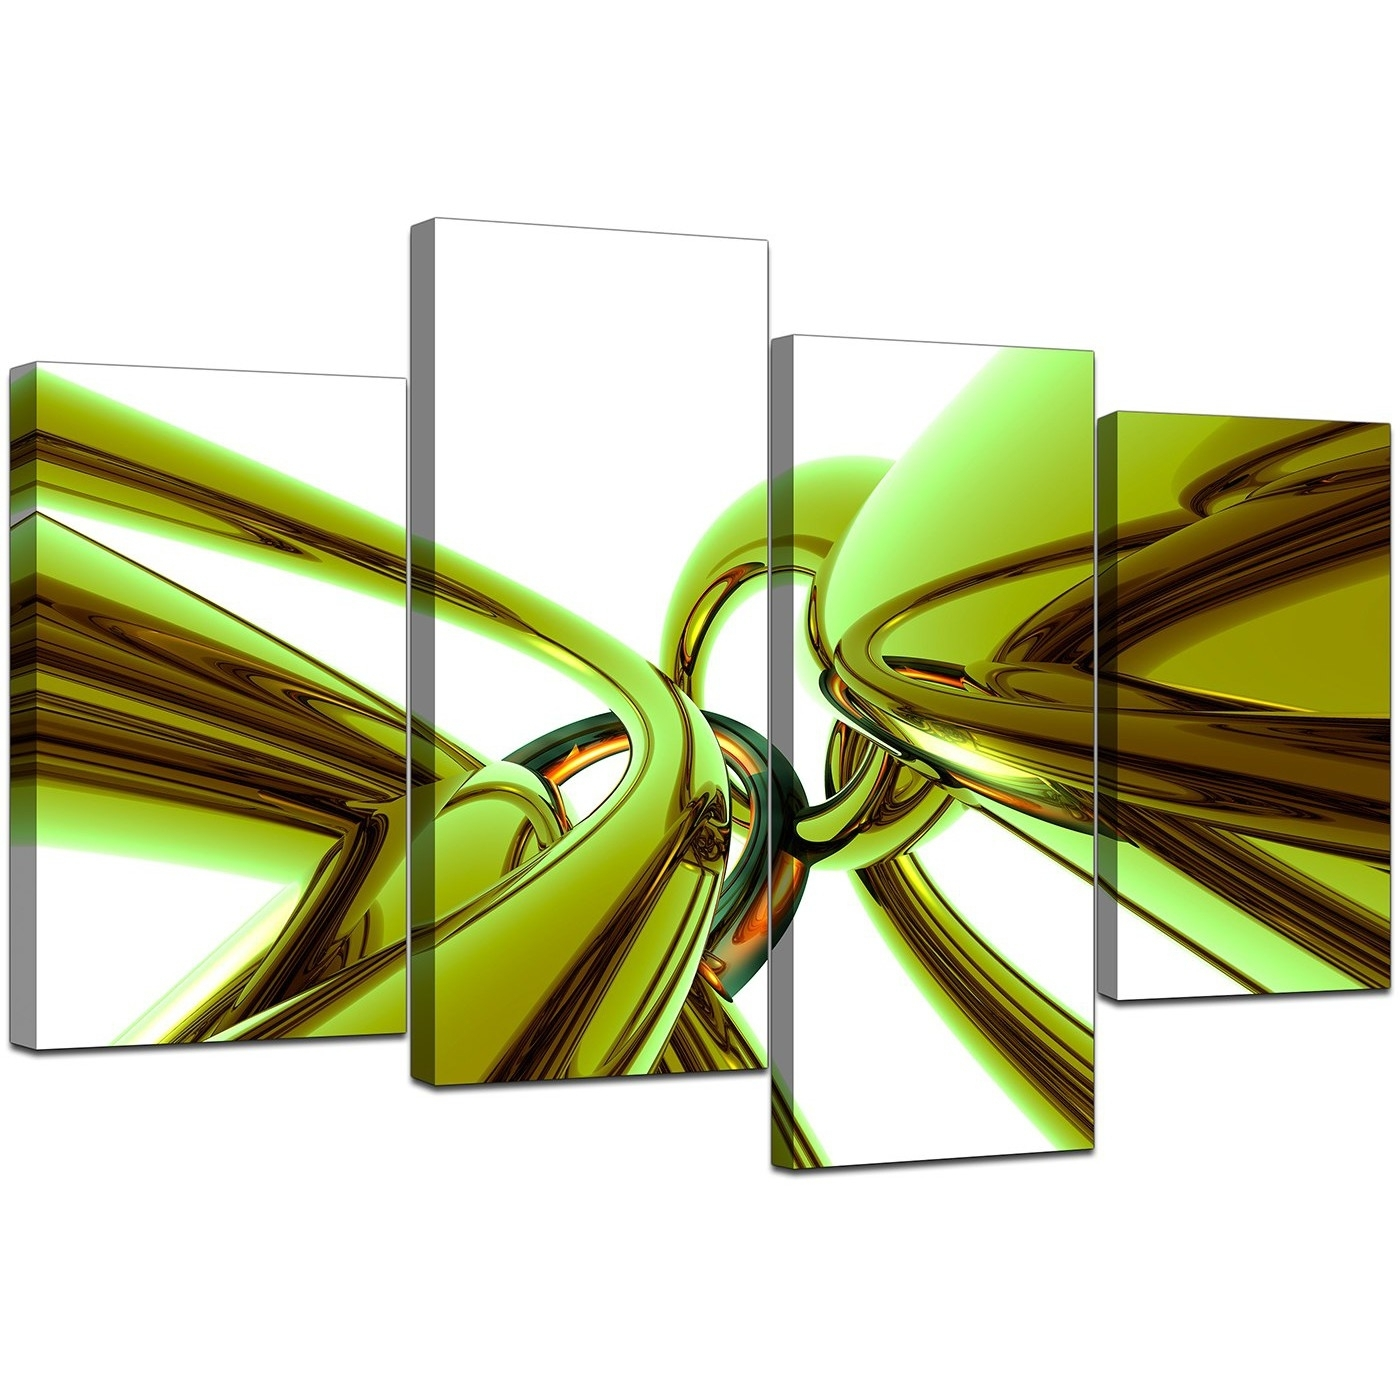 Abstract Canvas Wall Art In Green For Your Living Room – Set Of 4 Intended For Most Recently Released Lime Green Abstract Wall Art (View 4 of 20)